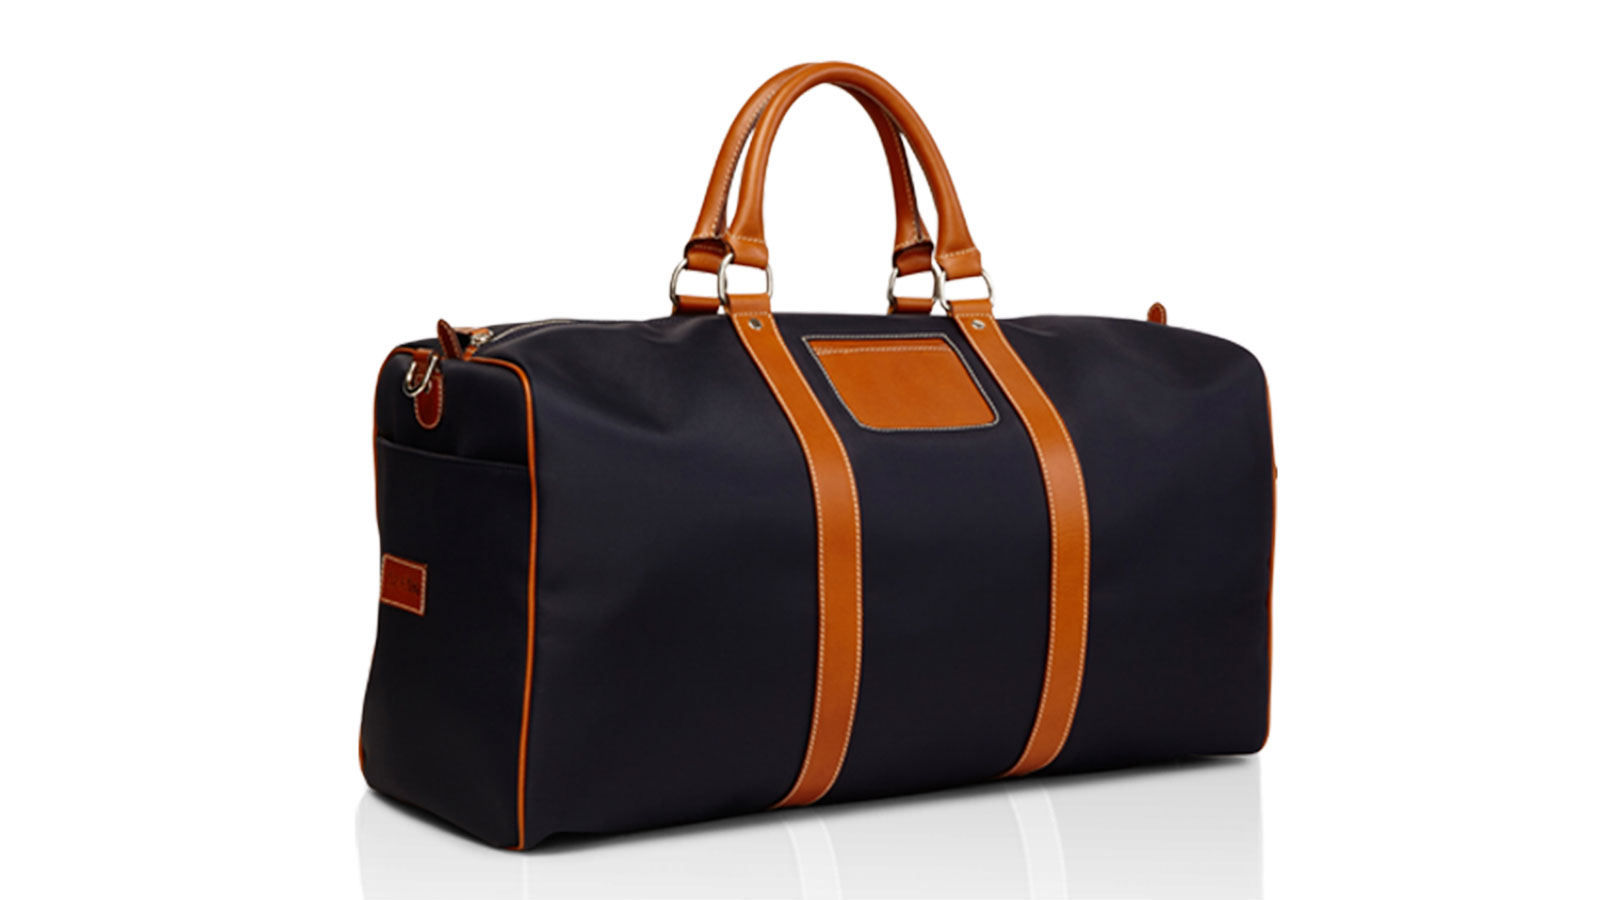 Travelteq Weekender Inside Out Duffel Bag | the best weekender bags for men